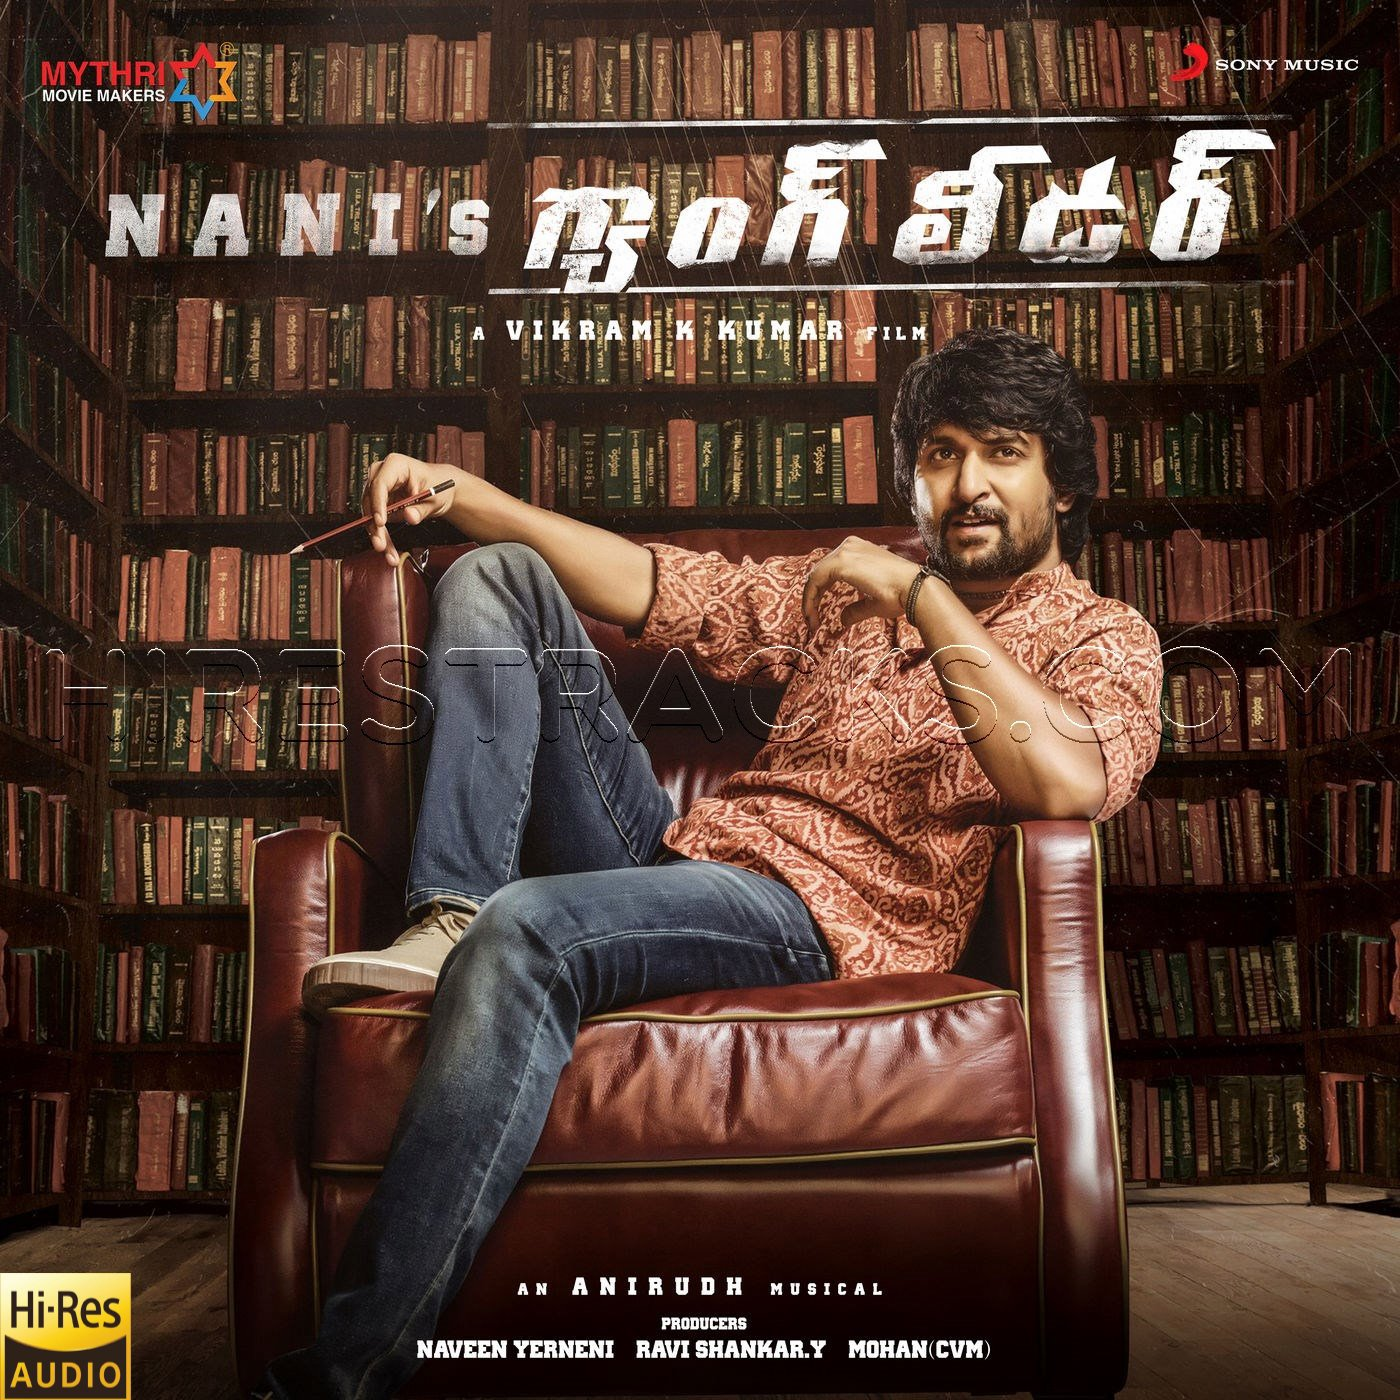 Gang Leader (2019) (Anirudh Ravichander) (Sony Music) [24 BIT – 48 KHZ] [DigitalRIP-FLAC]